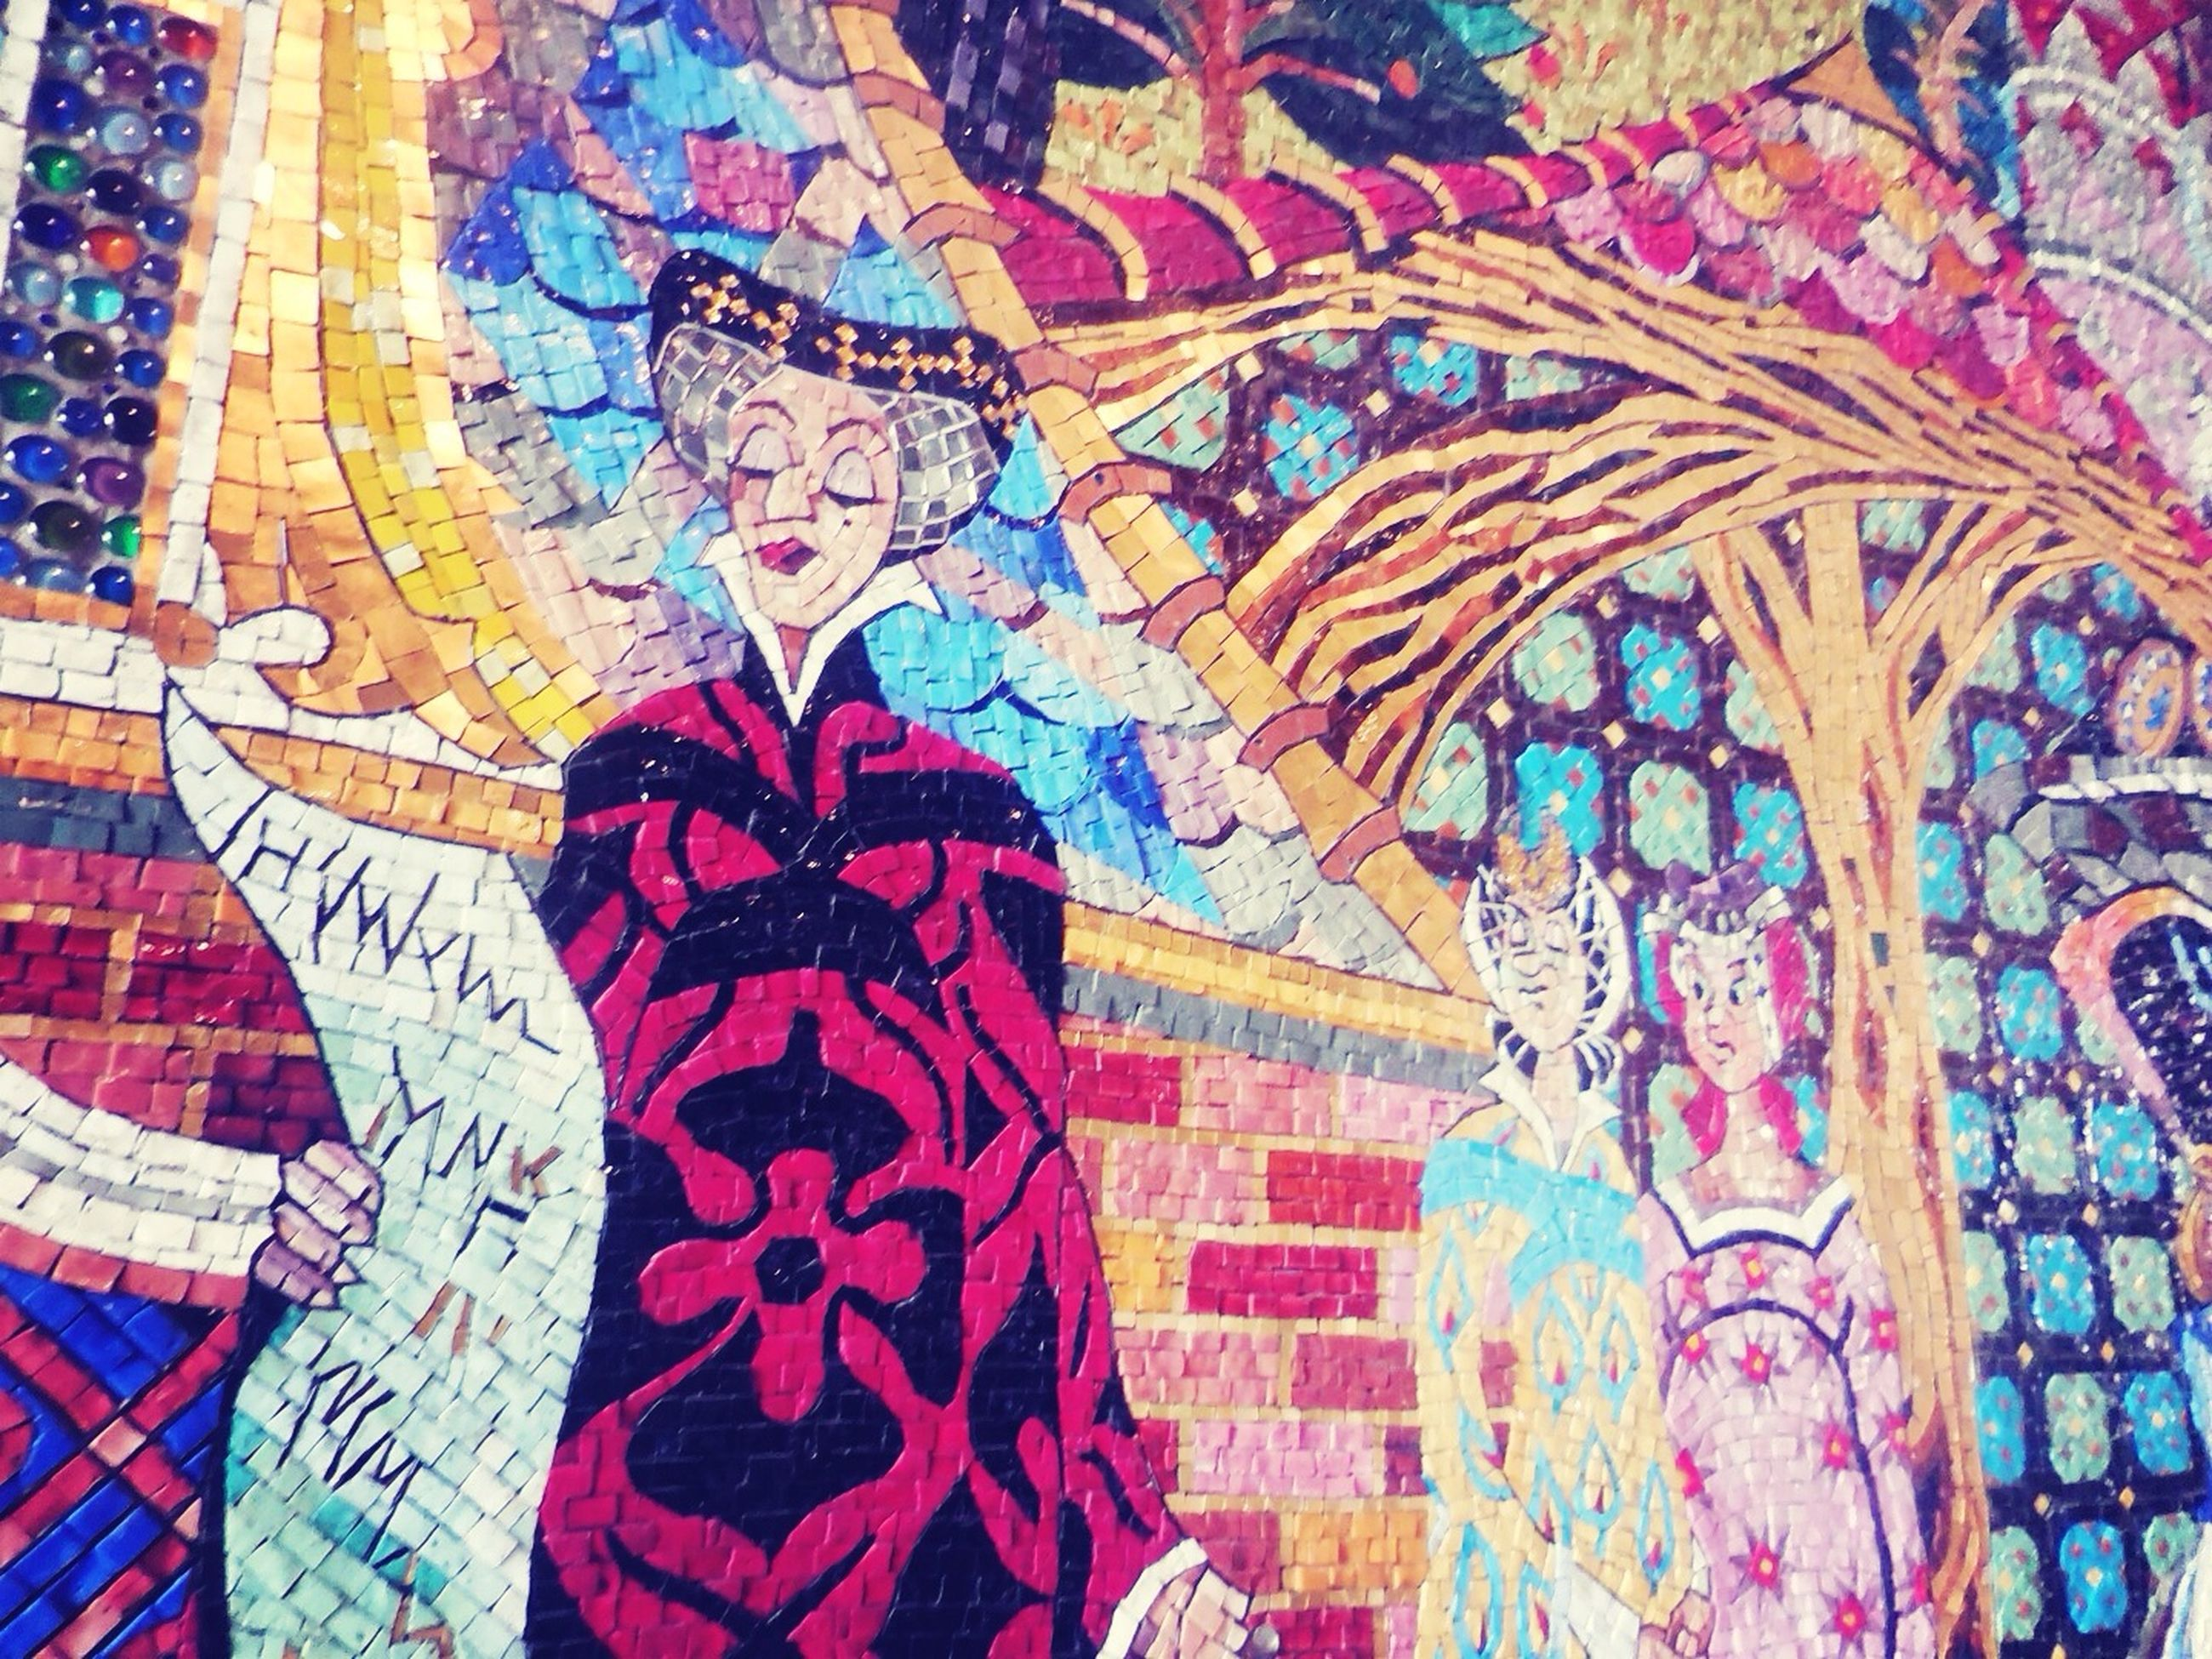 creativity, art and craft, art, multi colored, design, full frame, pattern, indoors, backgrounds, fabric, textile, graffiti, floral pattern, wall - building feature, architecture, textured, built structure, mural, painting, craft